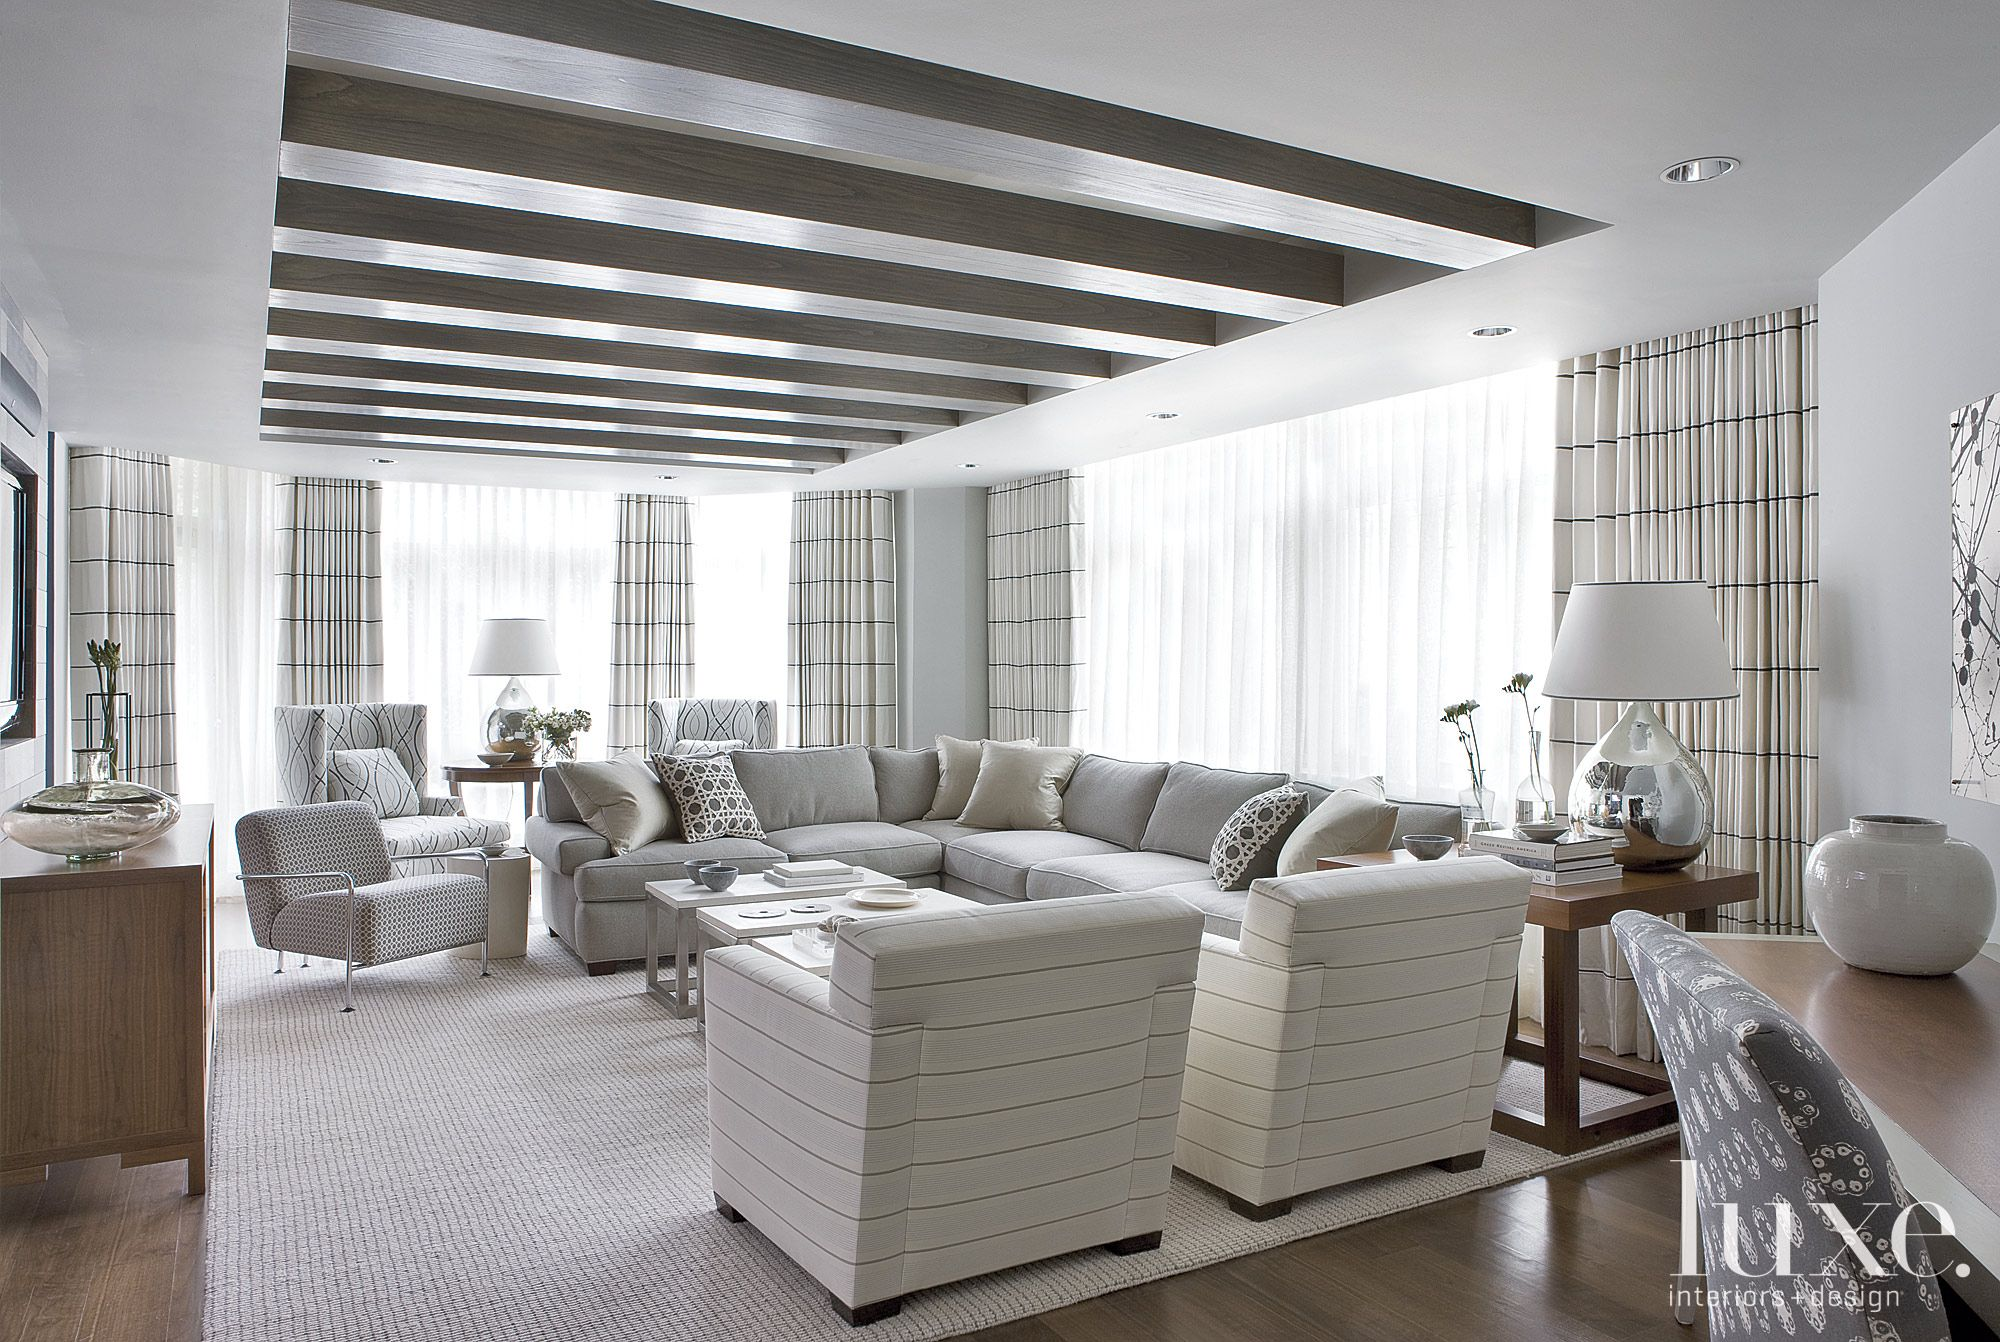 Contemporary Gray Living Room with Striped Decor